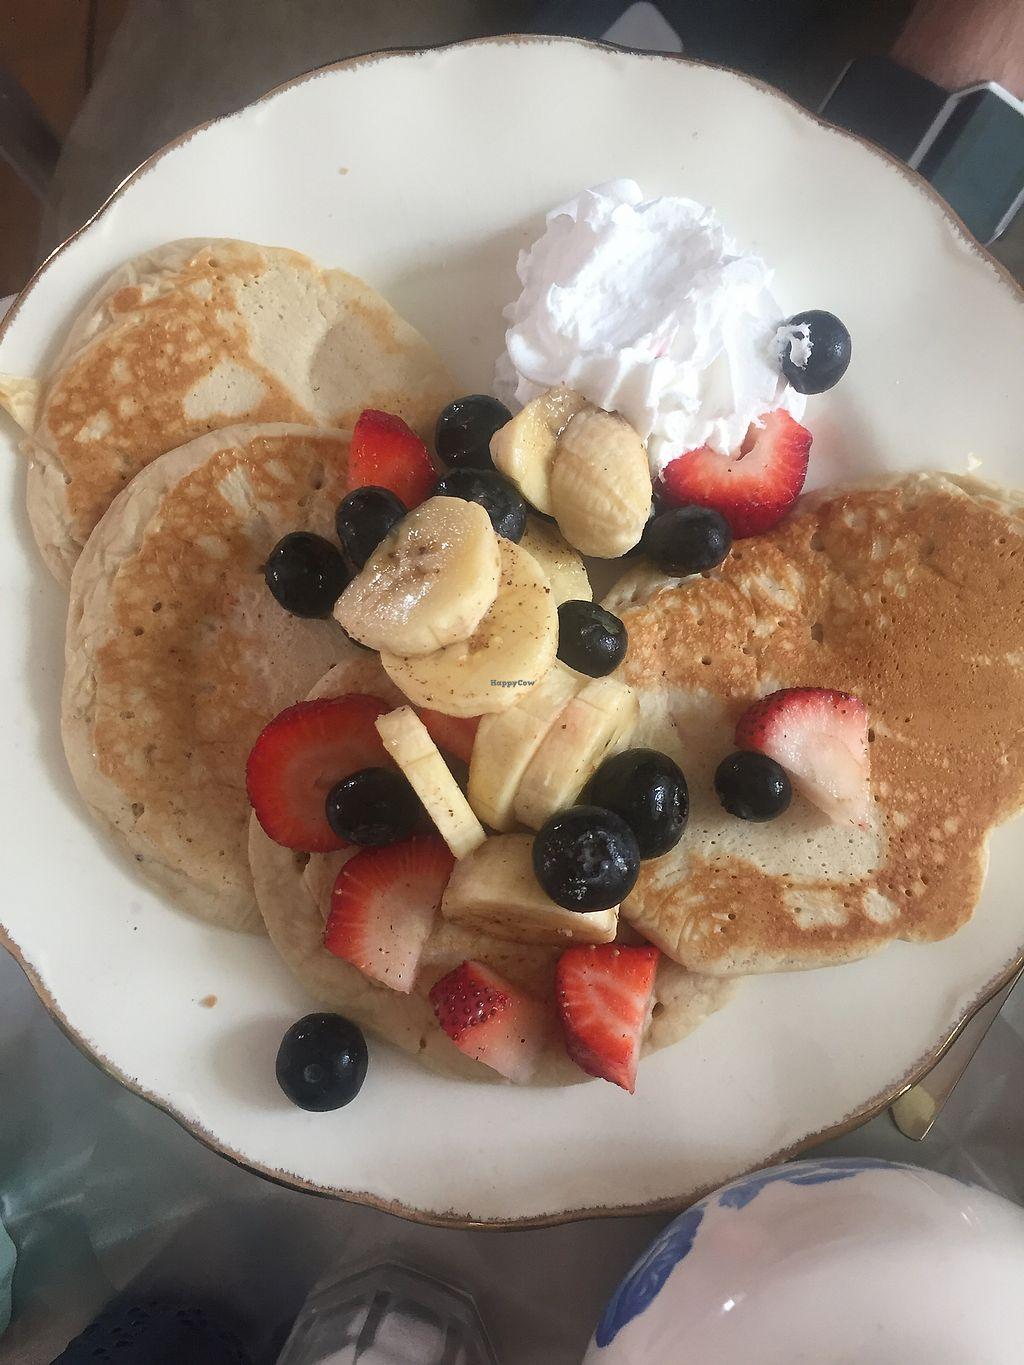 """Photo of The Churro Bar & Vegan Bakery  by <a href=""""/members/profile/amndaxxxx"""">amndaxxxx</a> <br/>Pancakes (syrup not pictured) <br/> January 14, 2018  - <a href='/contact/abuse/image/86714/346596'>Report</a>"""